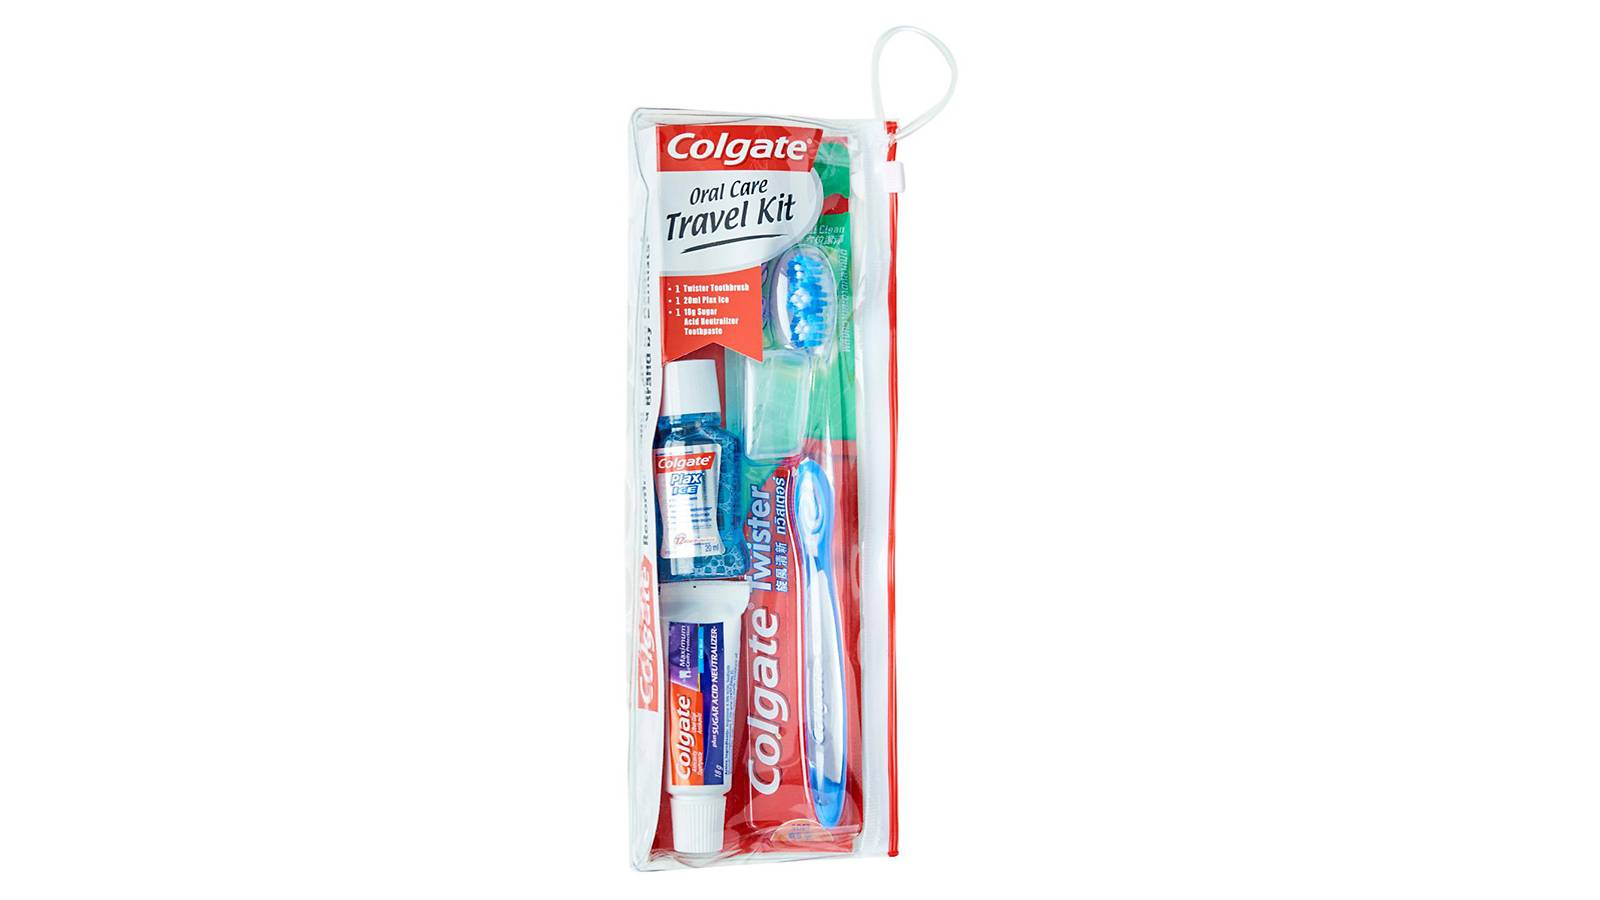 Colgate Twister Travel Kit